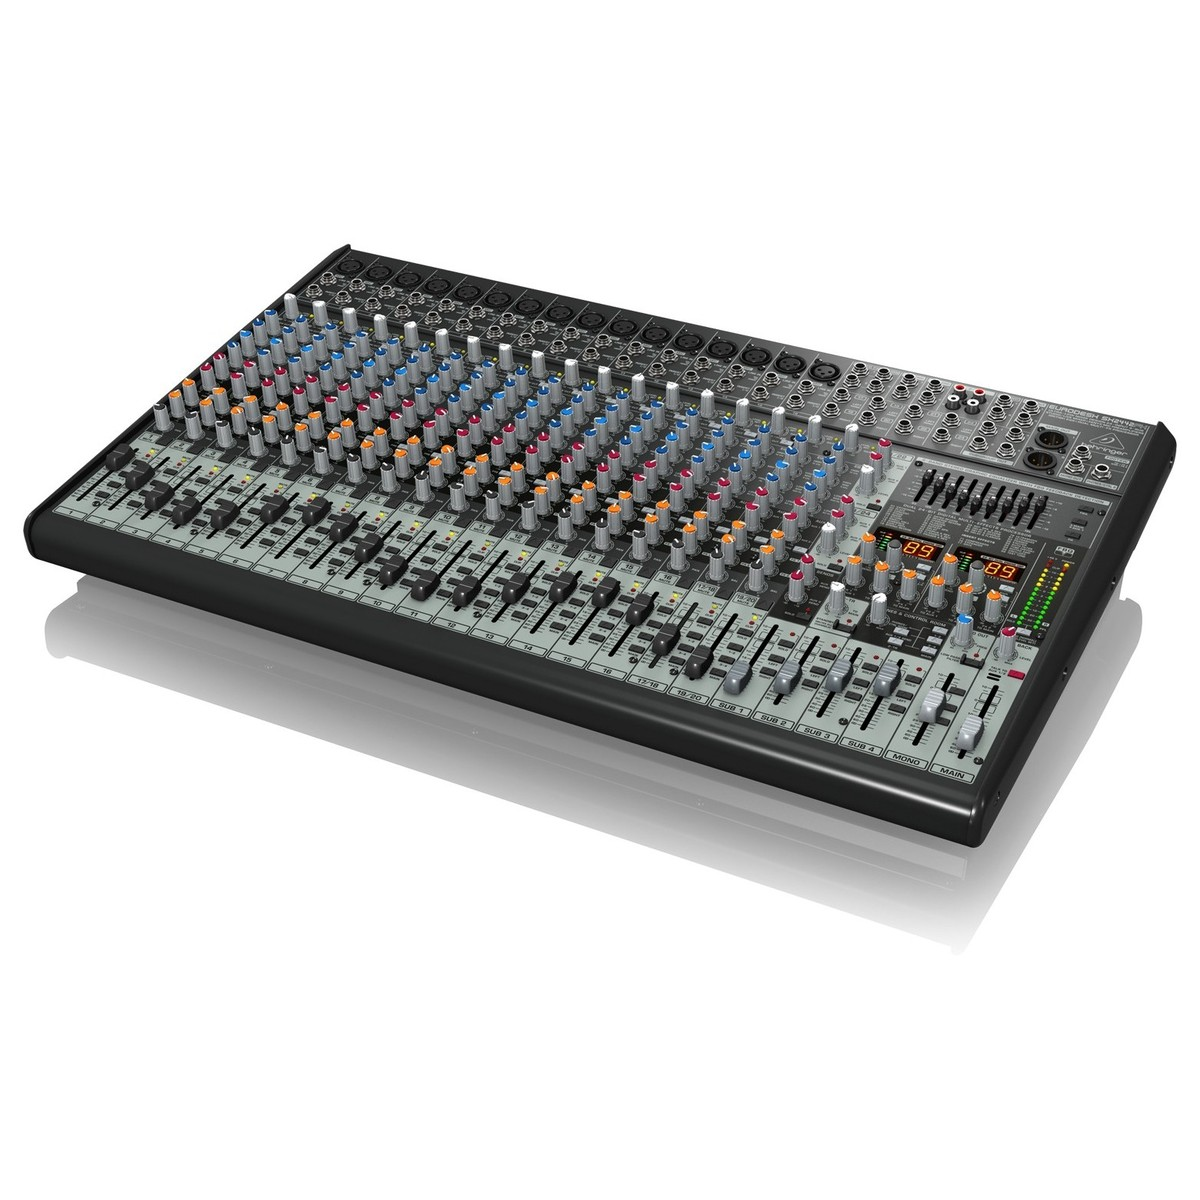 behringer eurodesk sx2442fx 24 channel analog mixer at. Black Bedroom Furniture Sets. Home Design Ideas